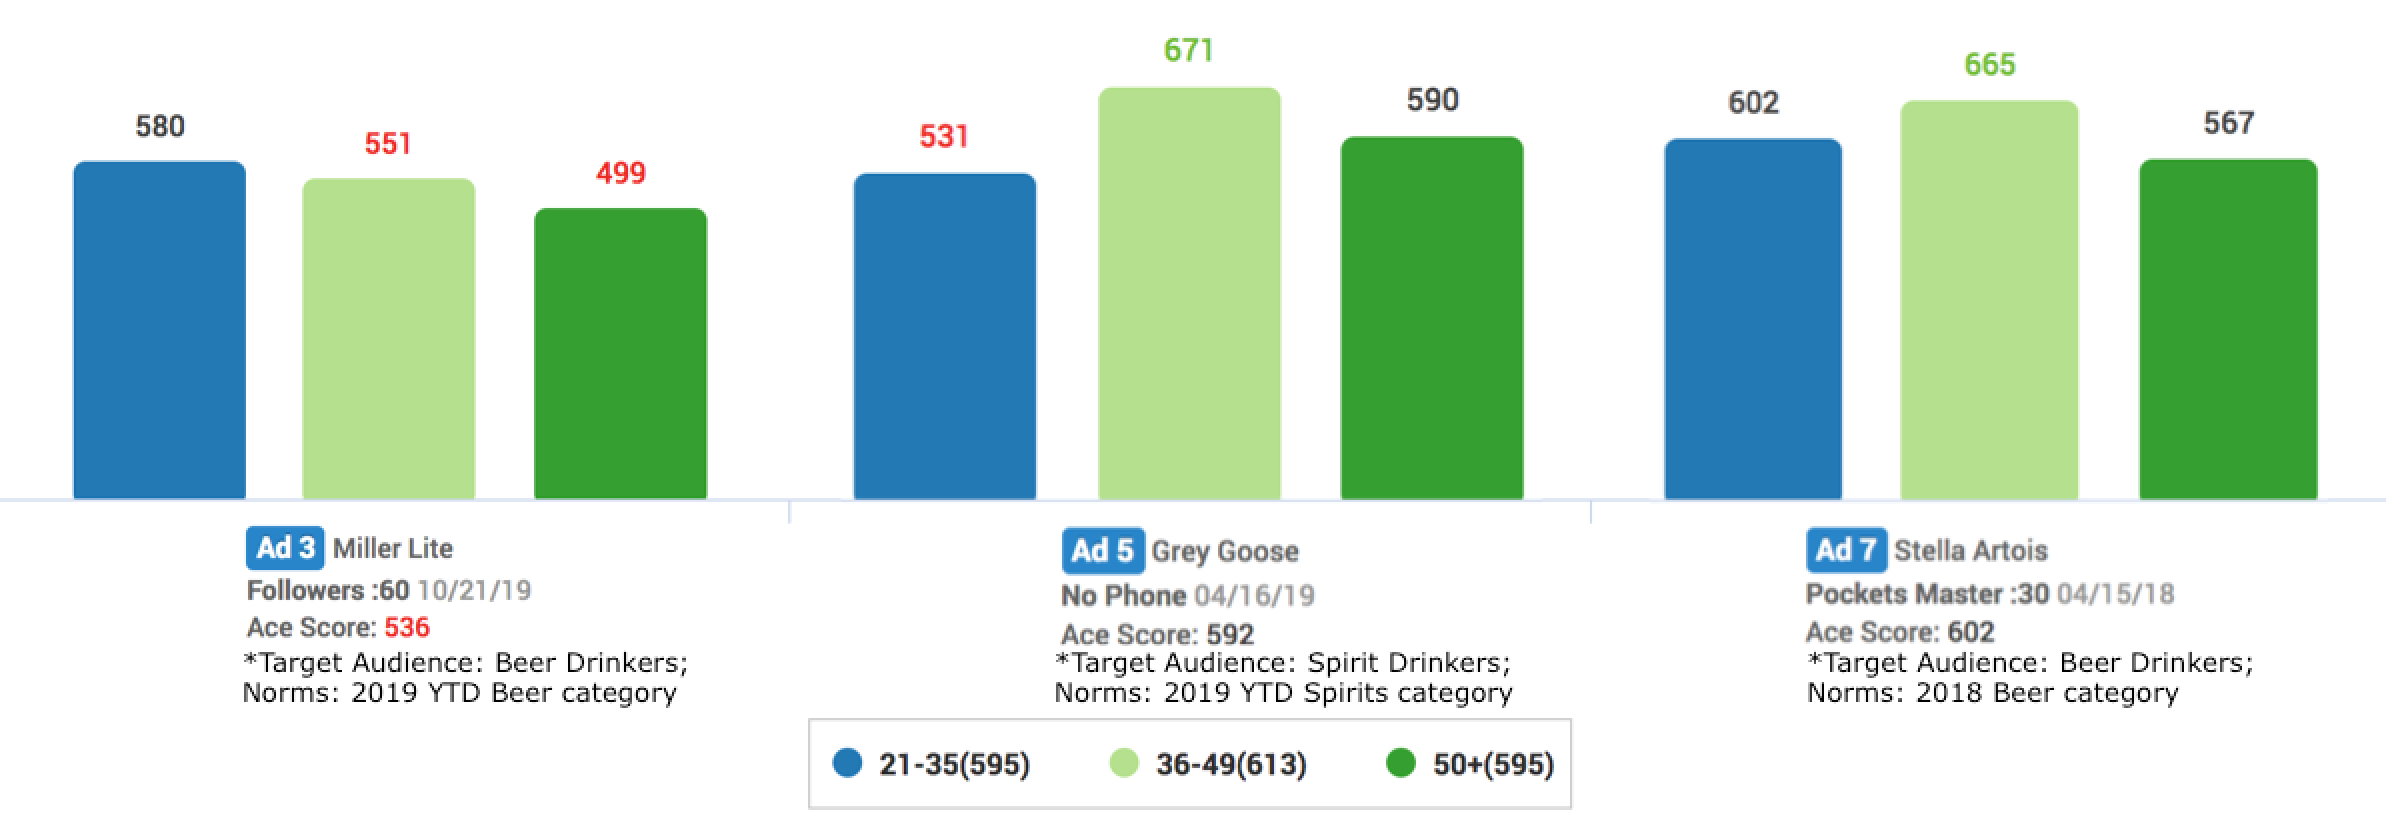 Ace Score by Age for Miller Lite, Grey Goose, Stella Artois